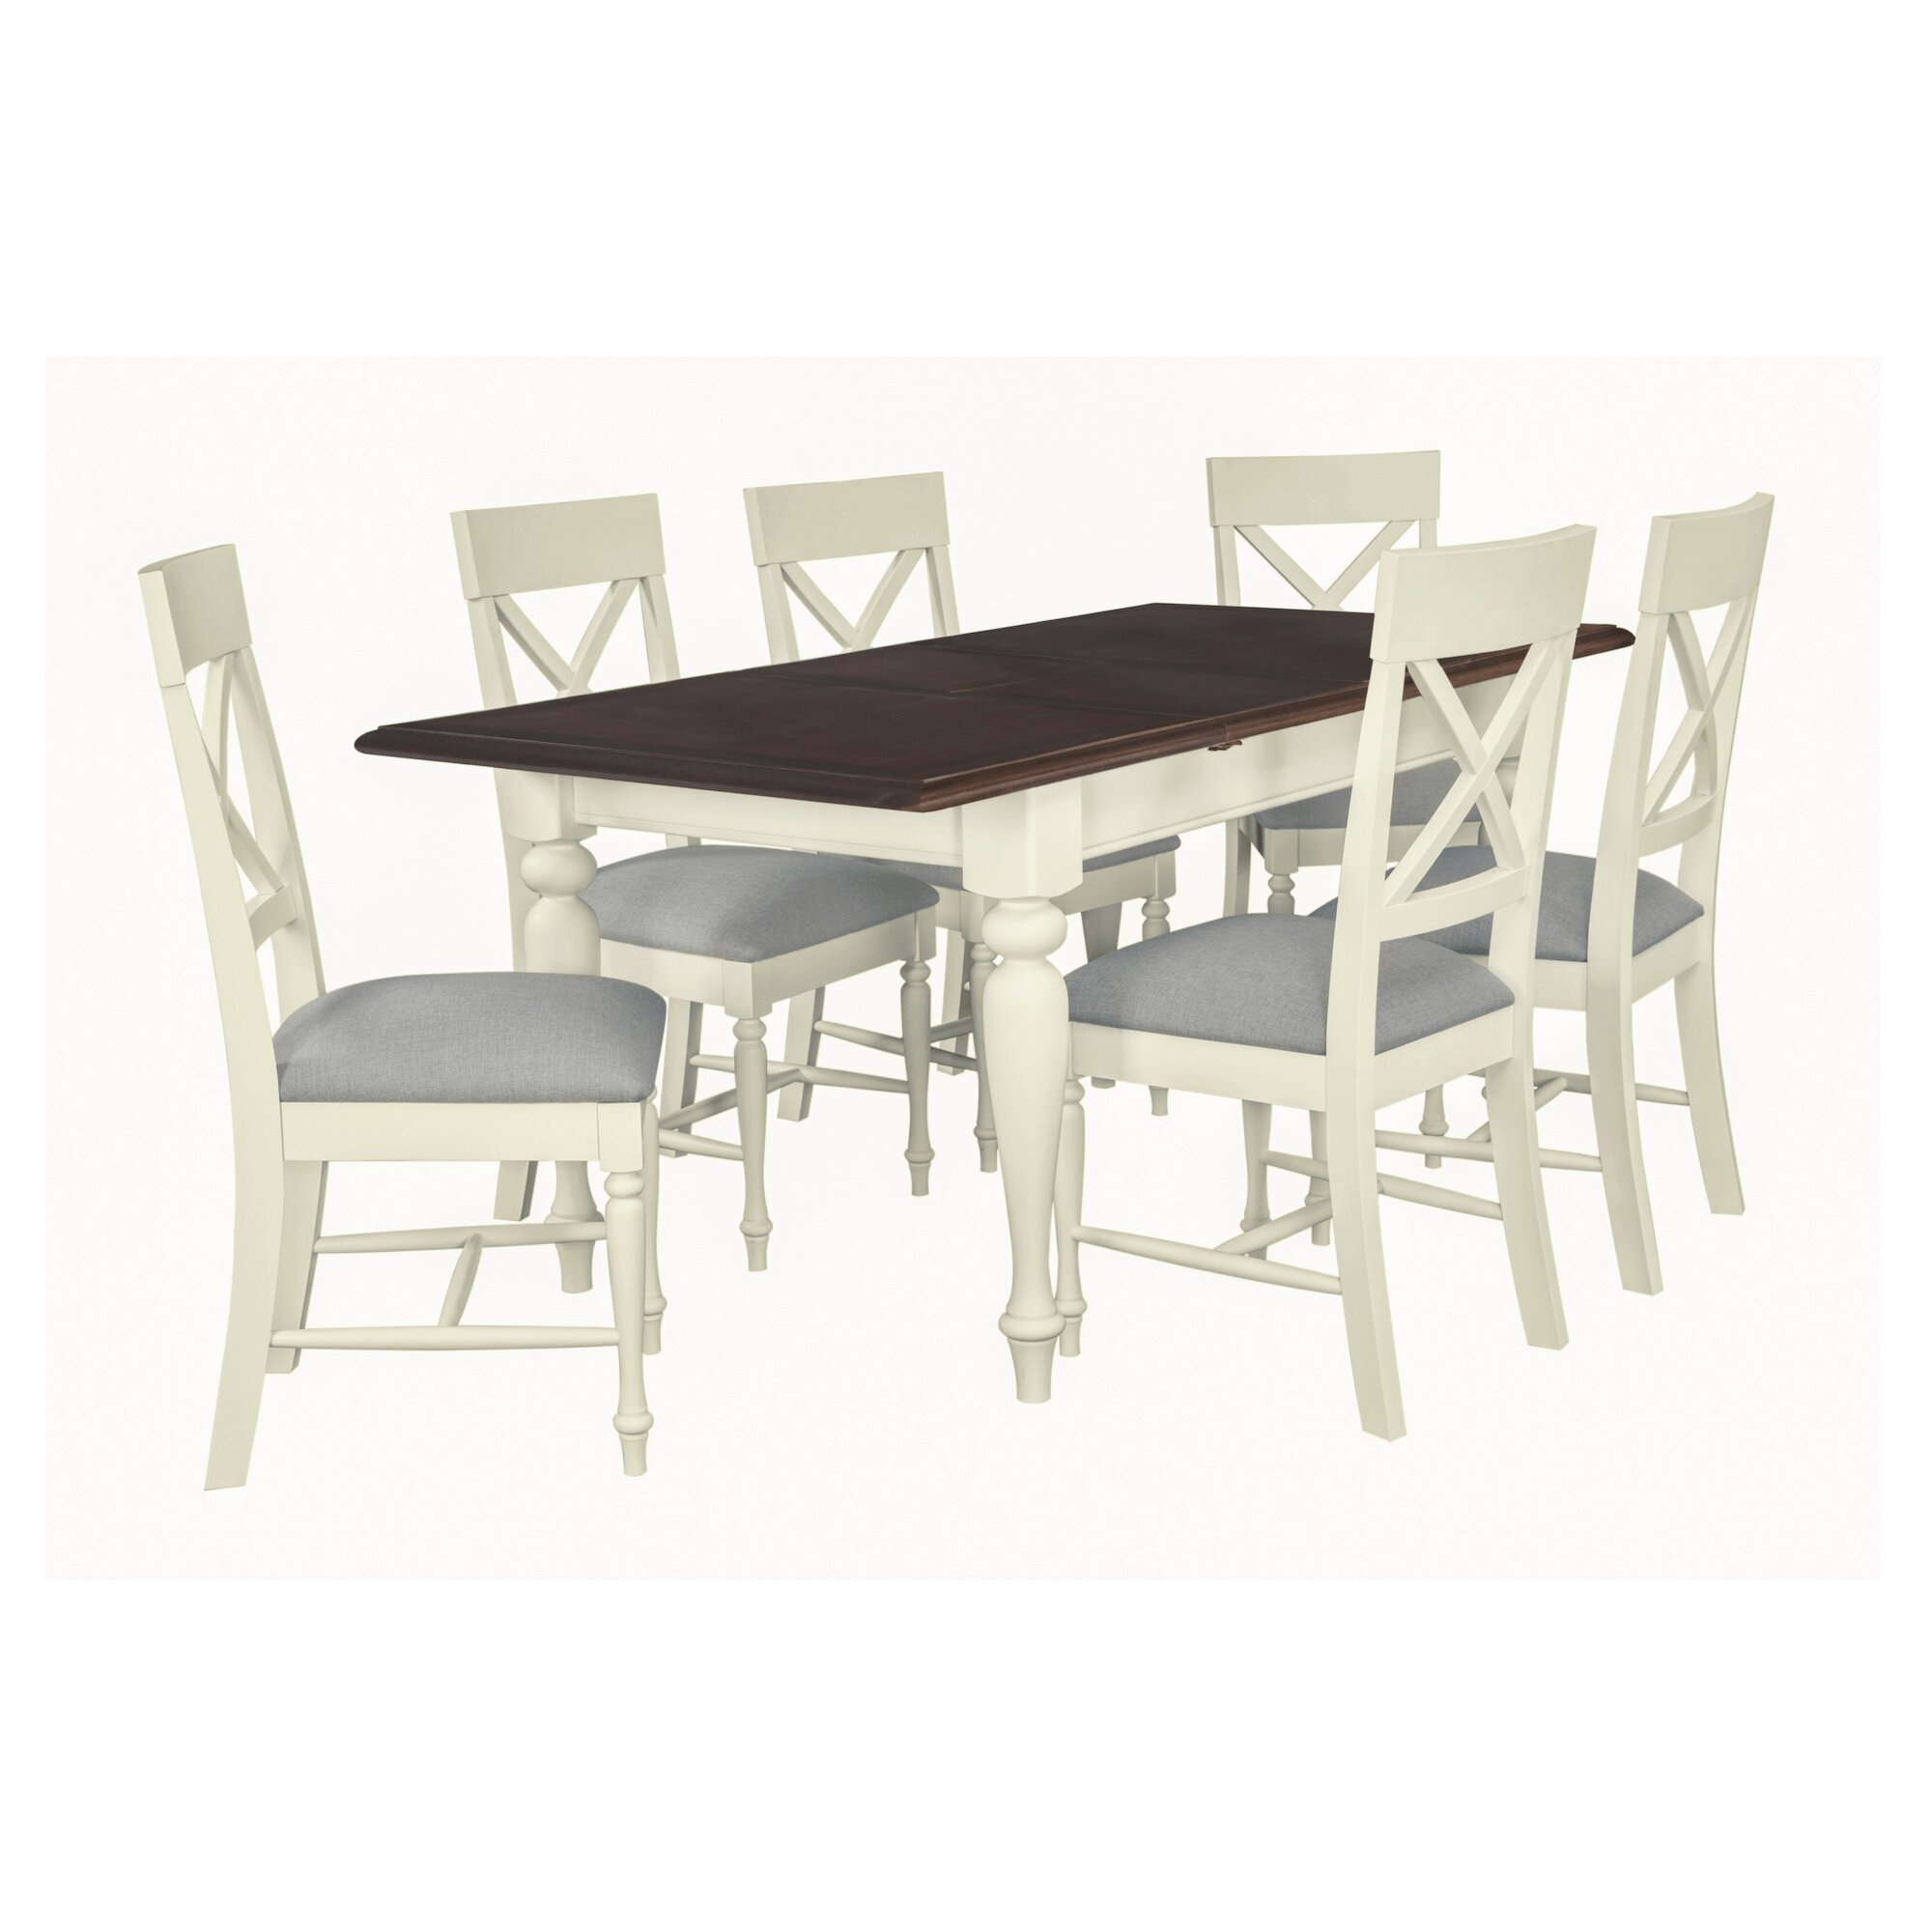 August Grove Orlo Extendable Dining Set With 6 Chairs Wayfair Co Uk